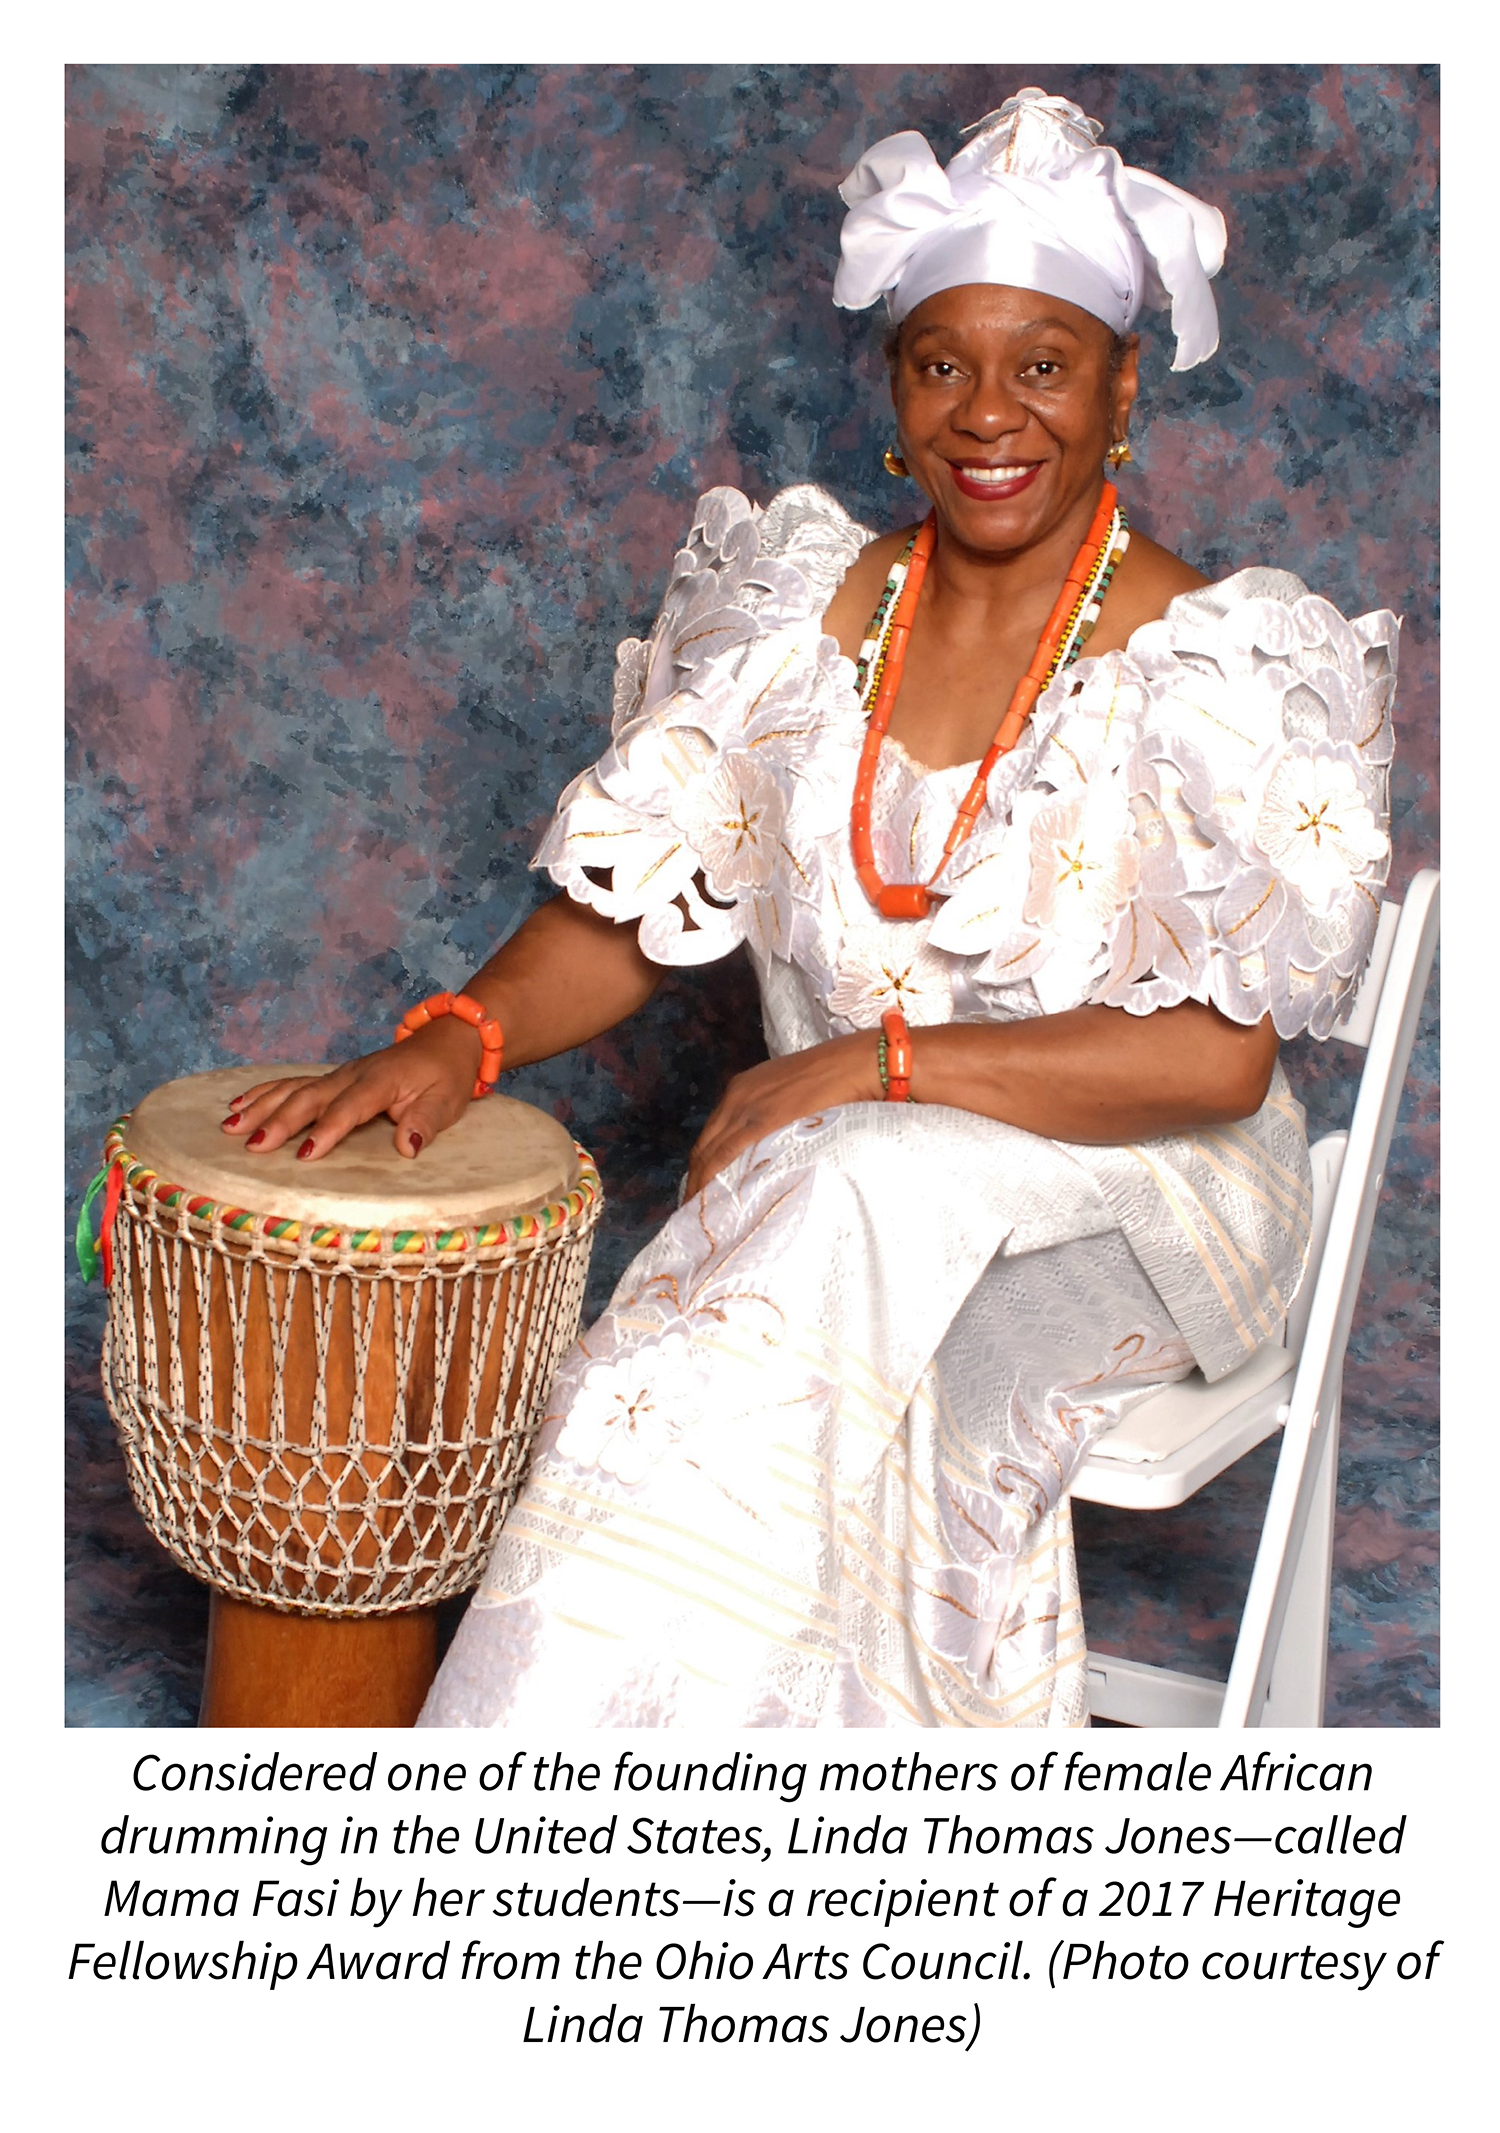 Considered one of the founding mothers of female African drumming in the United States, Linda Thomas Jones—called Mama Fasi by her students—is a recipient of a 2017 Heritage Fellowship Award from the Ohio Arts Council. Photo courtesy of Linda Thomas Jones.